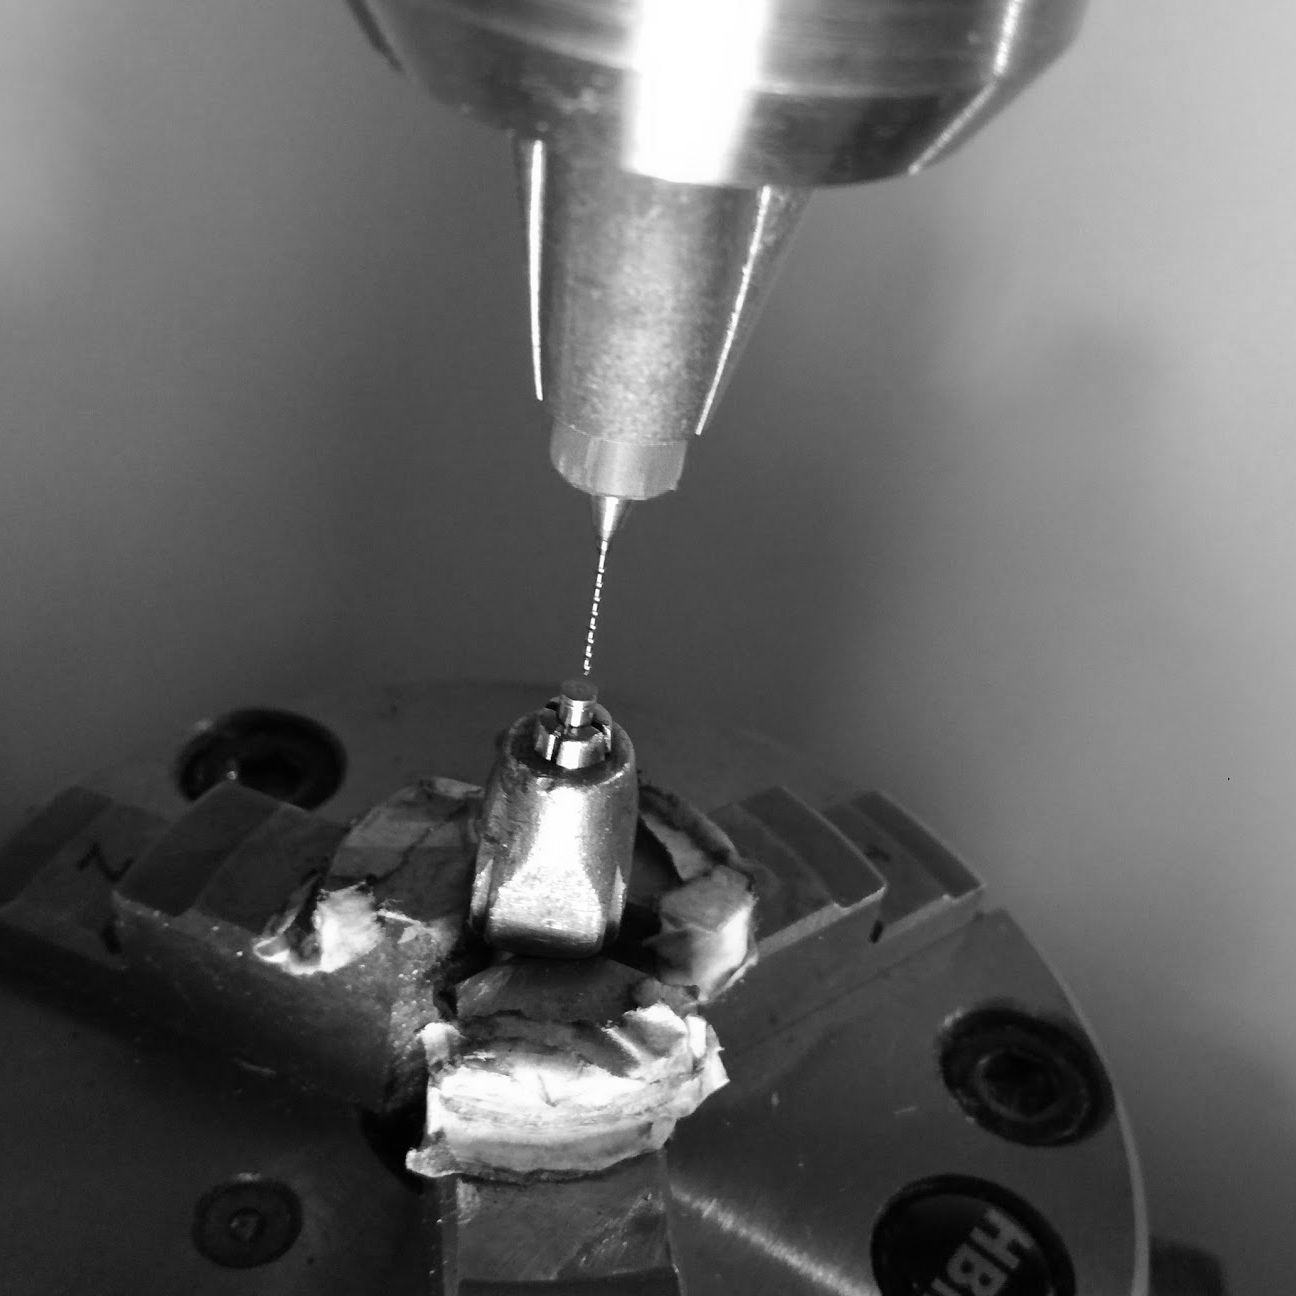 Further drilling of hole for retainer screws in stem.